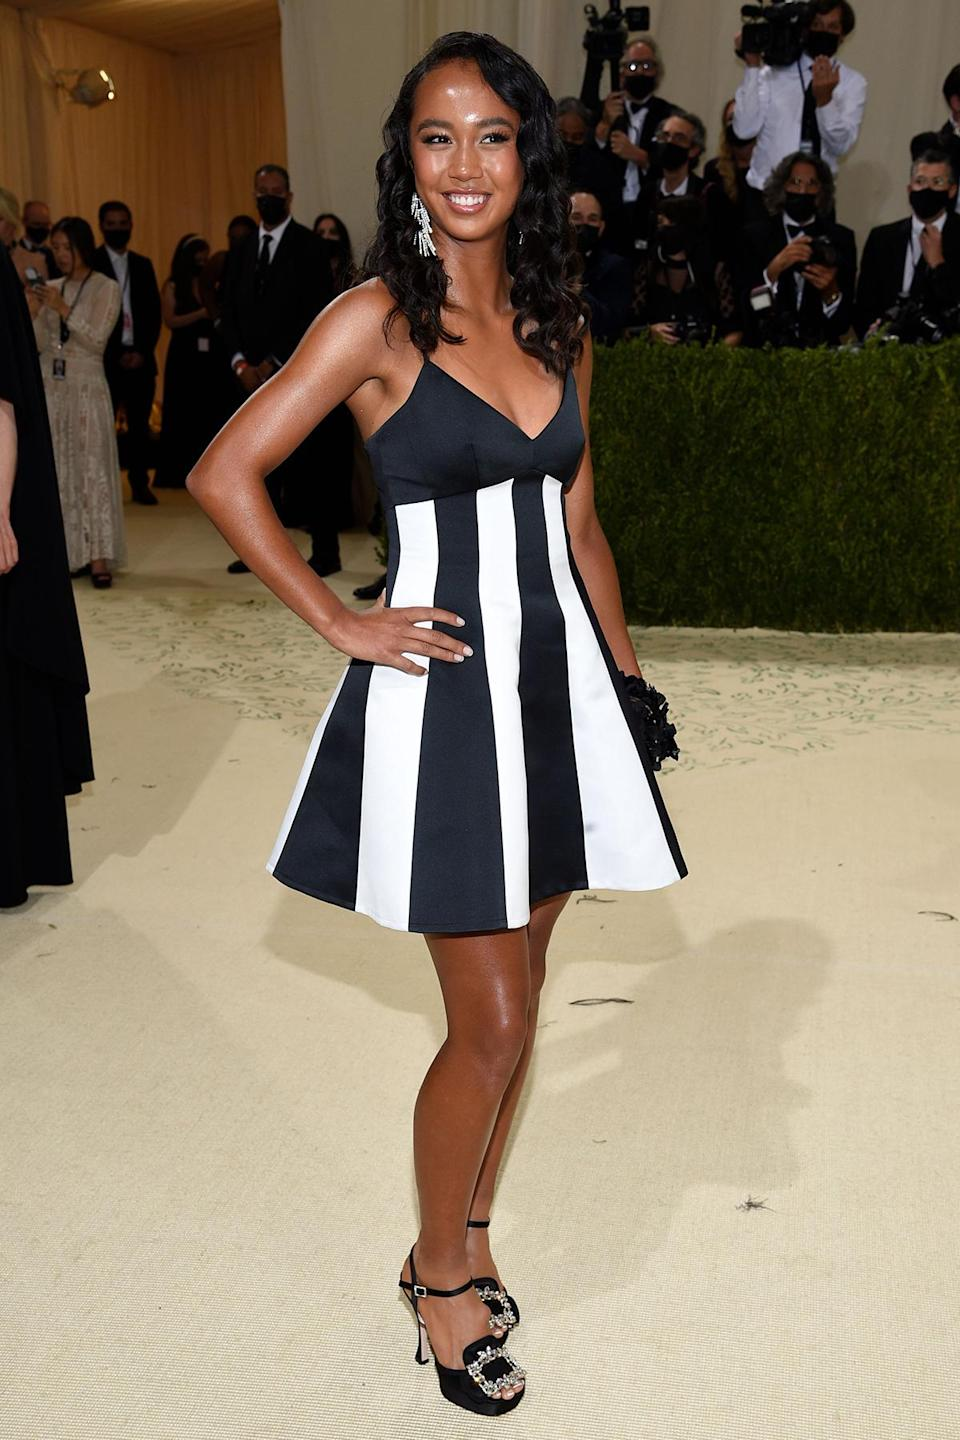 <p>The Canadian athlete, who came second in the US Open women's tennis tournament, attended her first Met Gala in Carolina Herrera.</p>